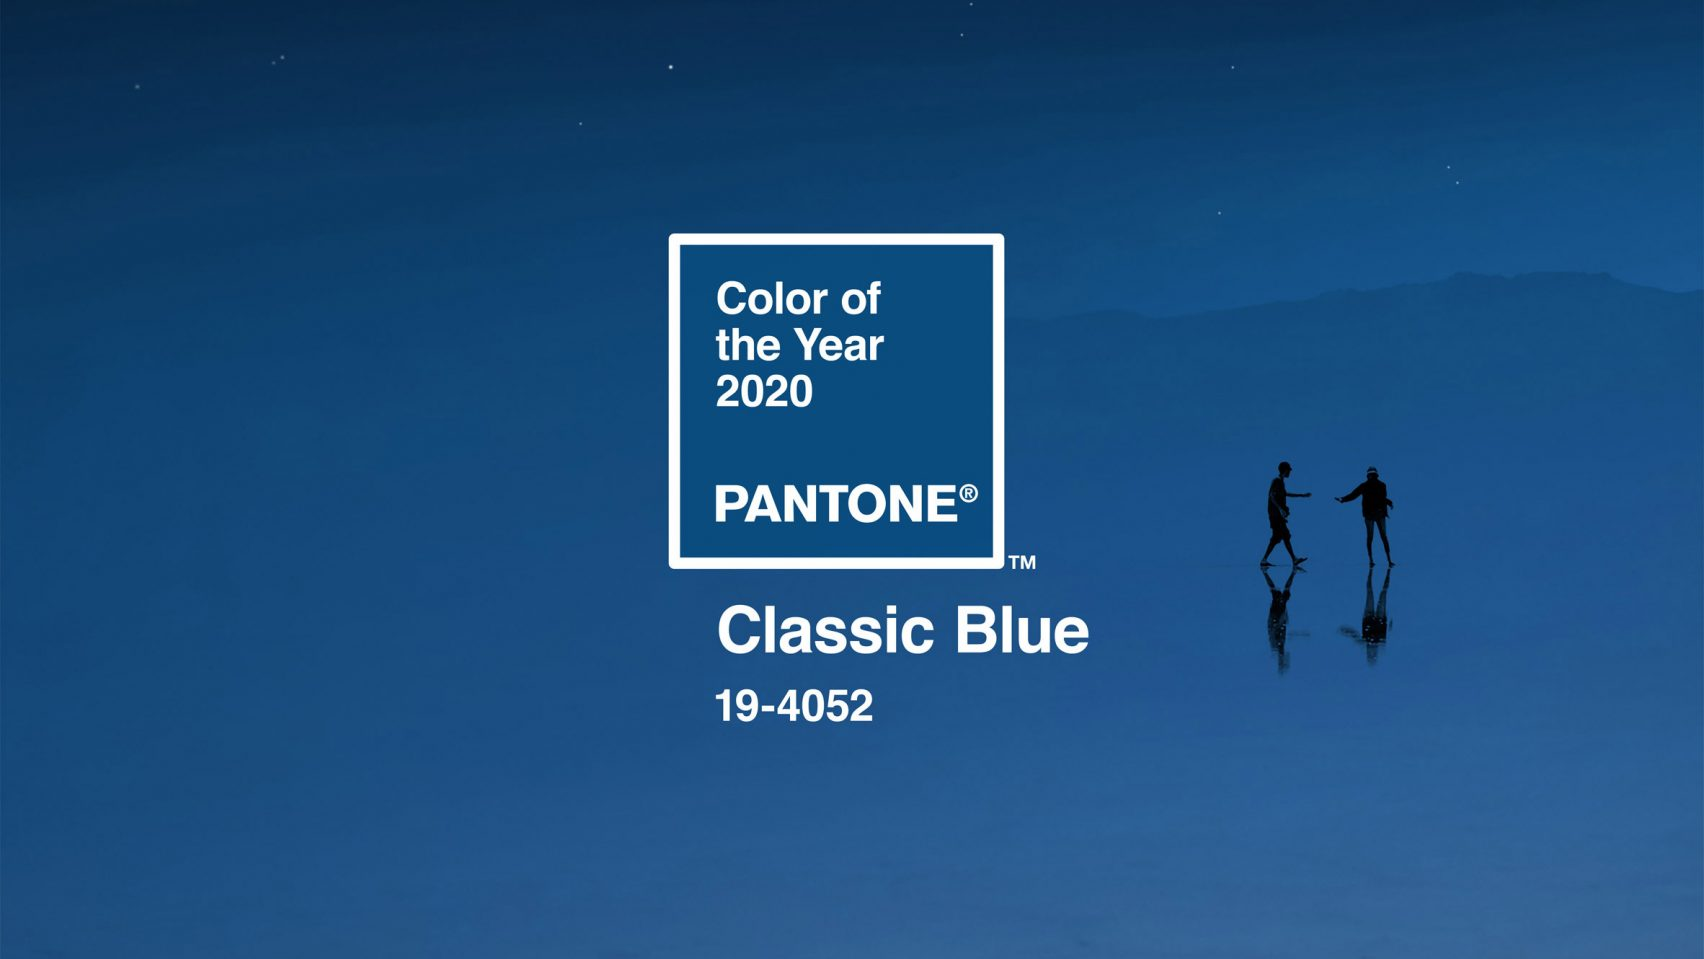 Patone Color of the Year 2020- Classic Blue